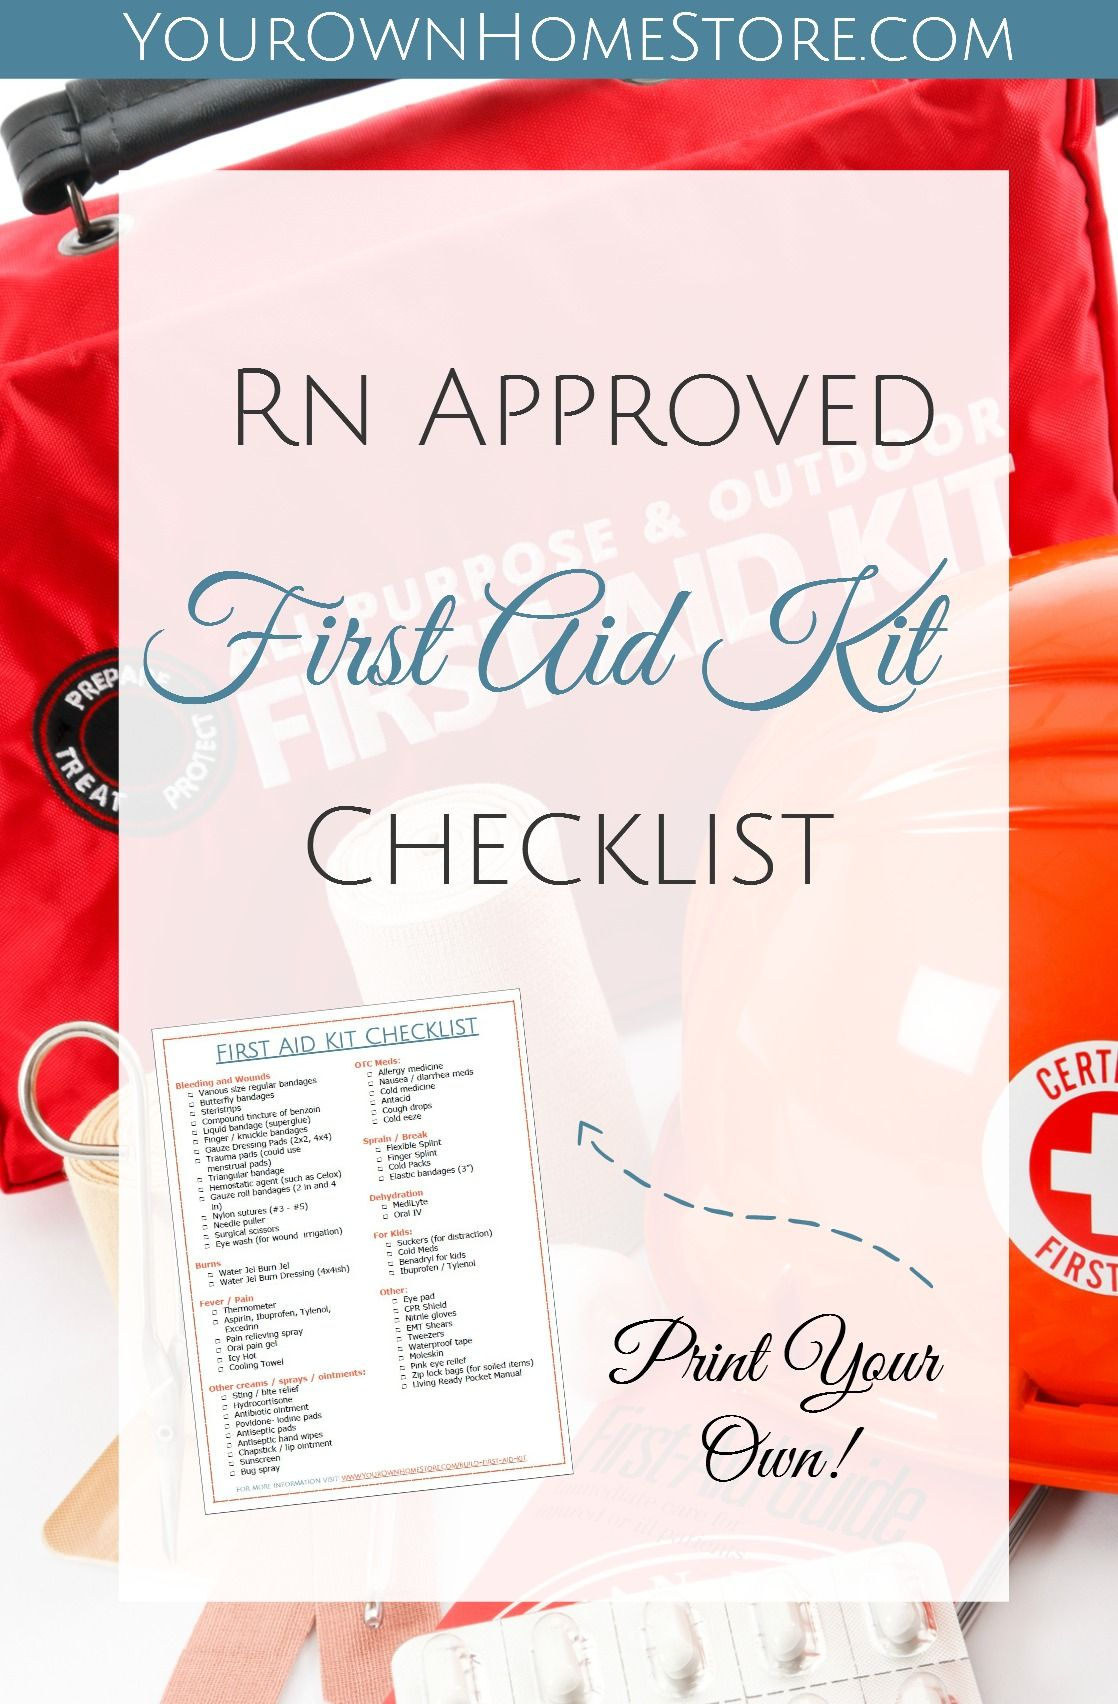 A Printable RN (and mom) Approved First Aid Kit Checklist